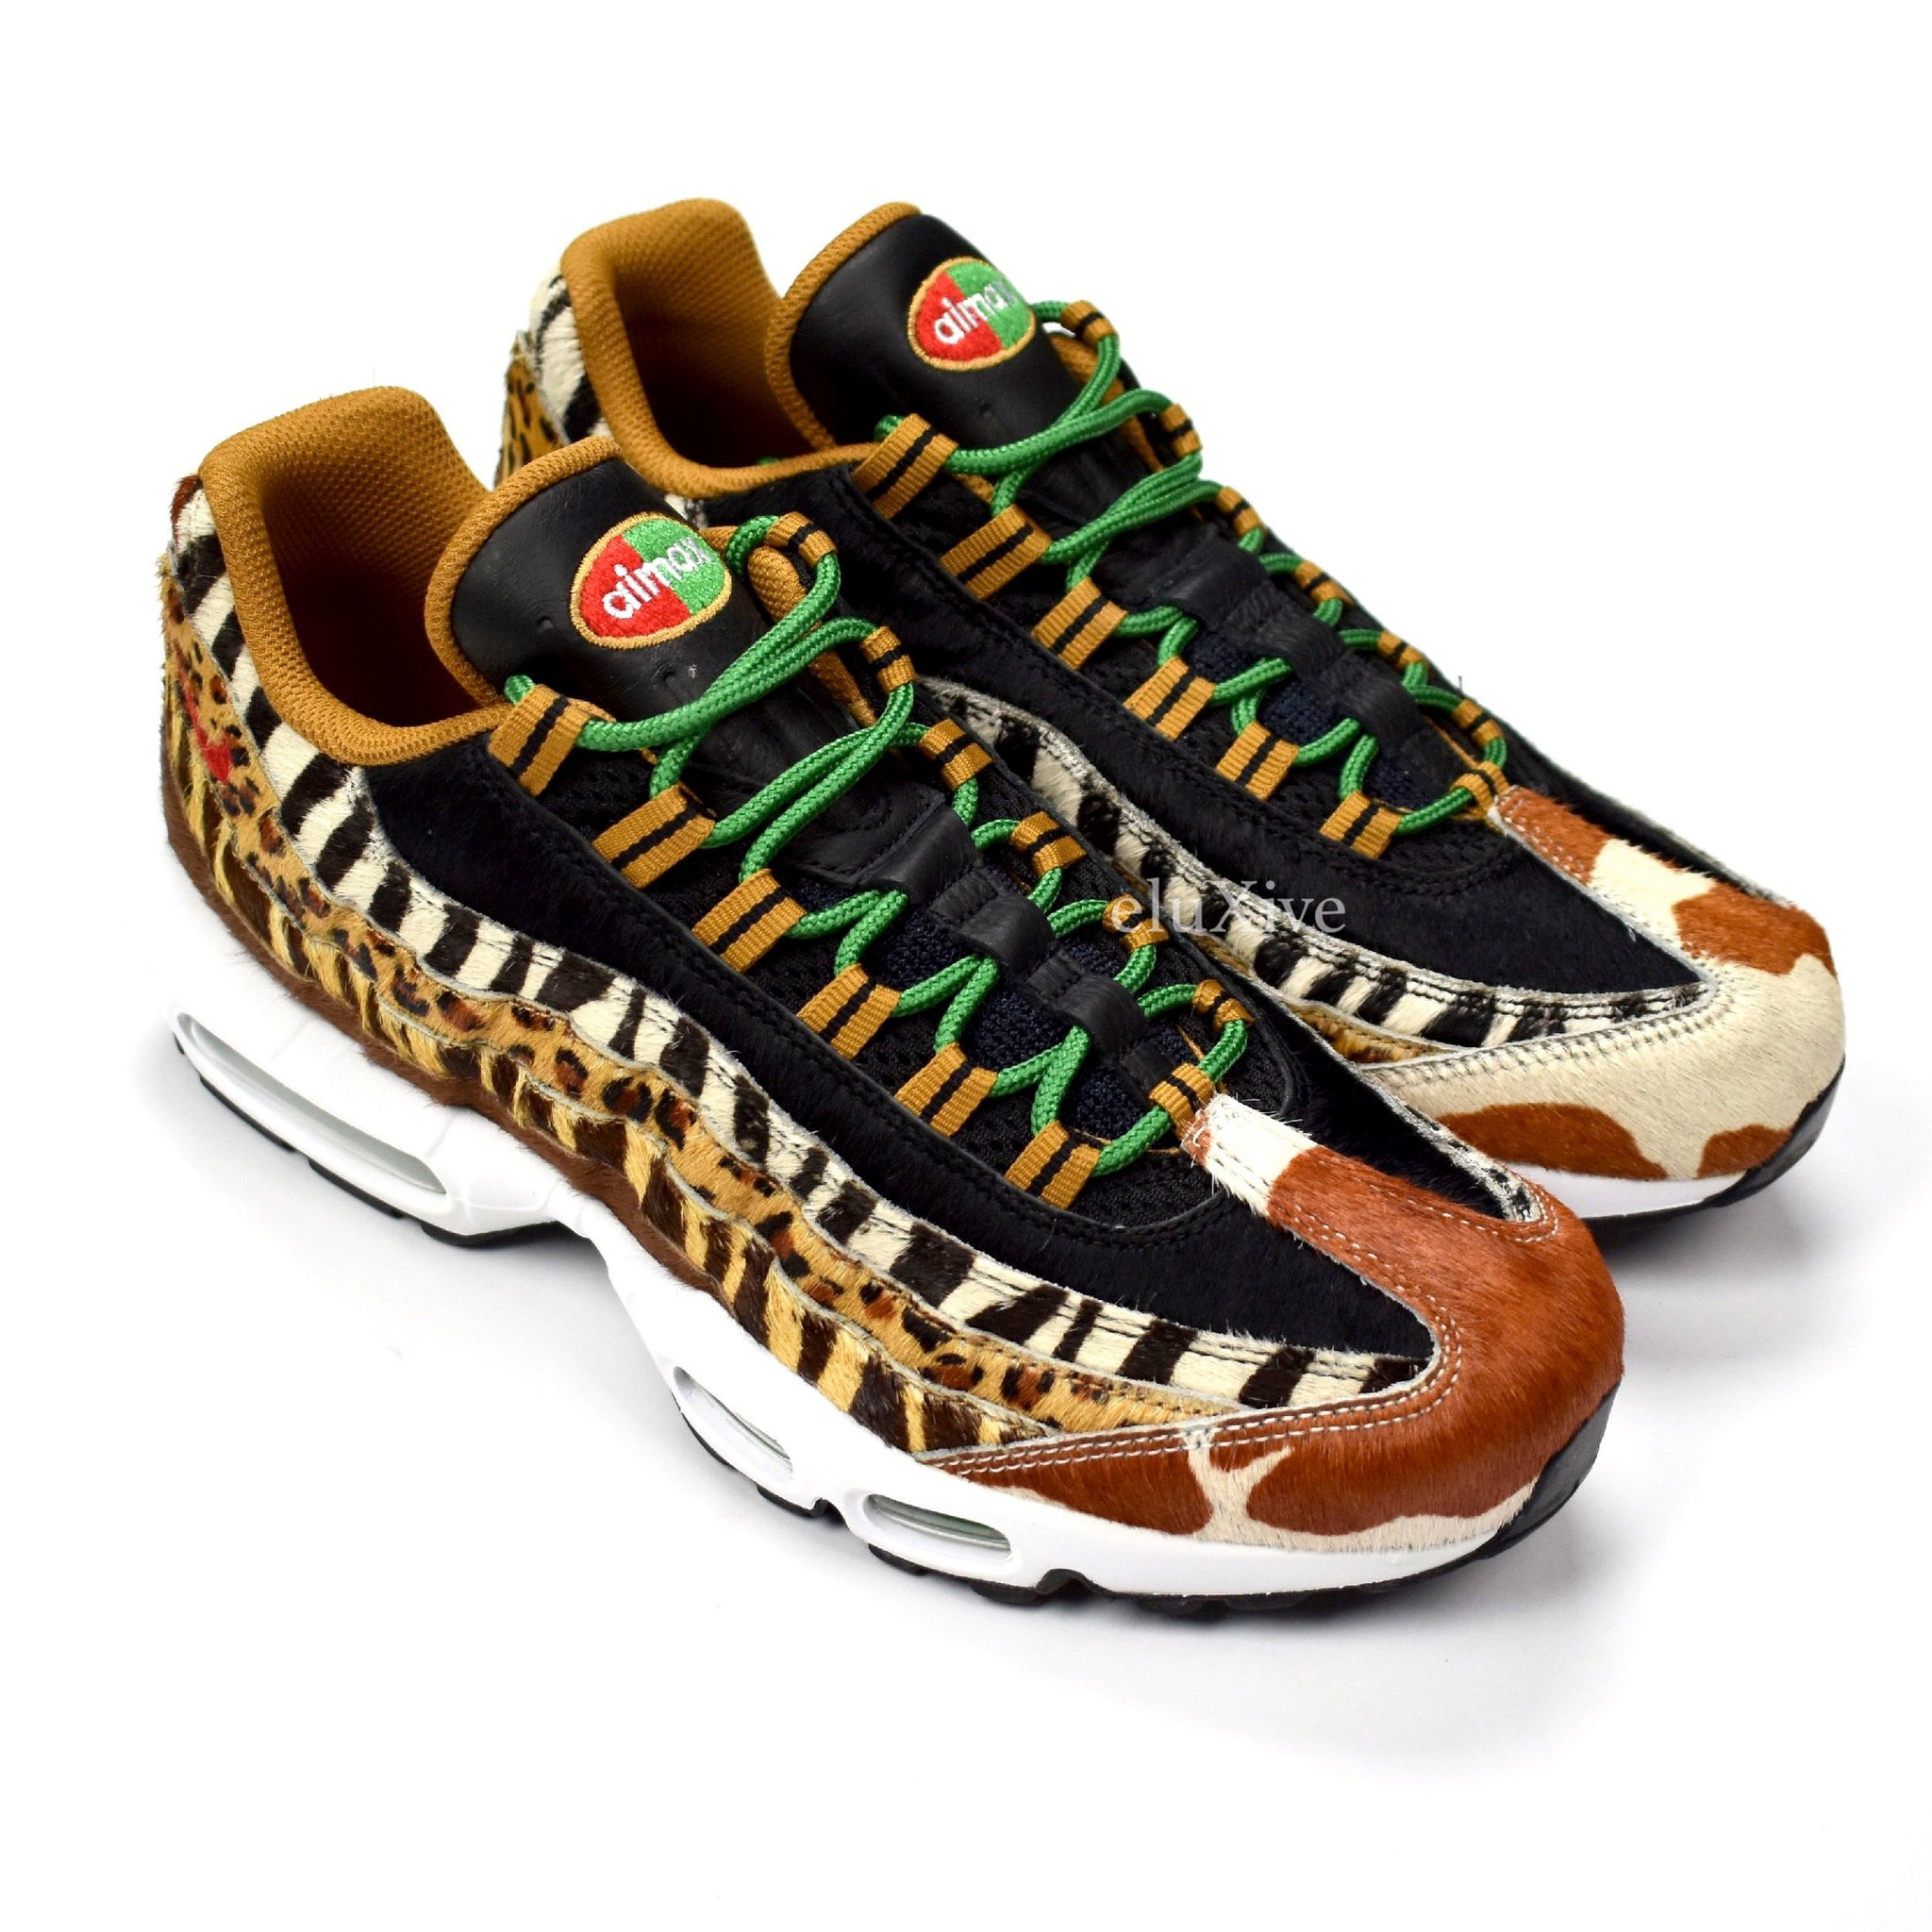 promo code 83126 f7f0d Nike x Atmos - Air Max 95 DLX  Animal Pack  ...